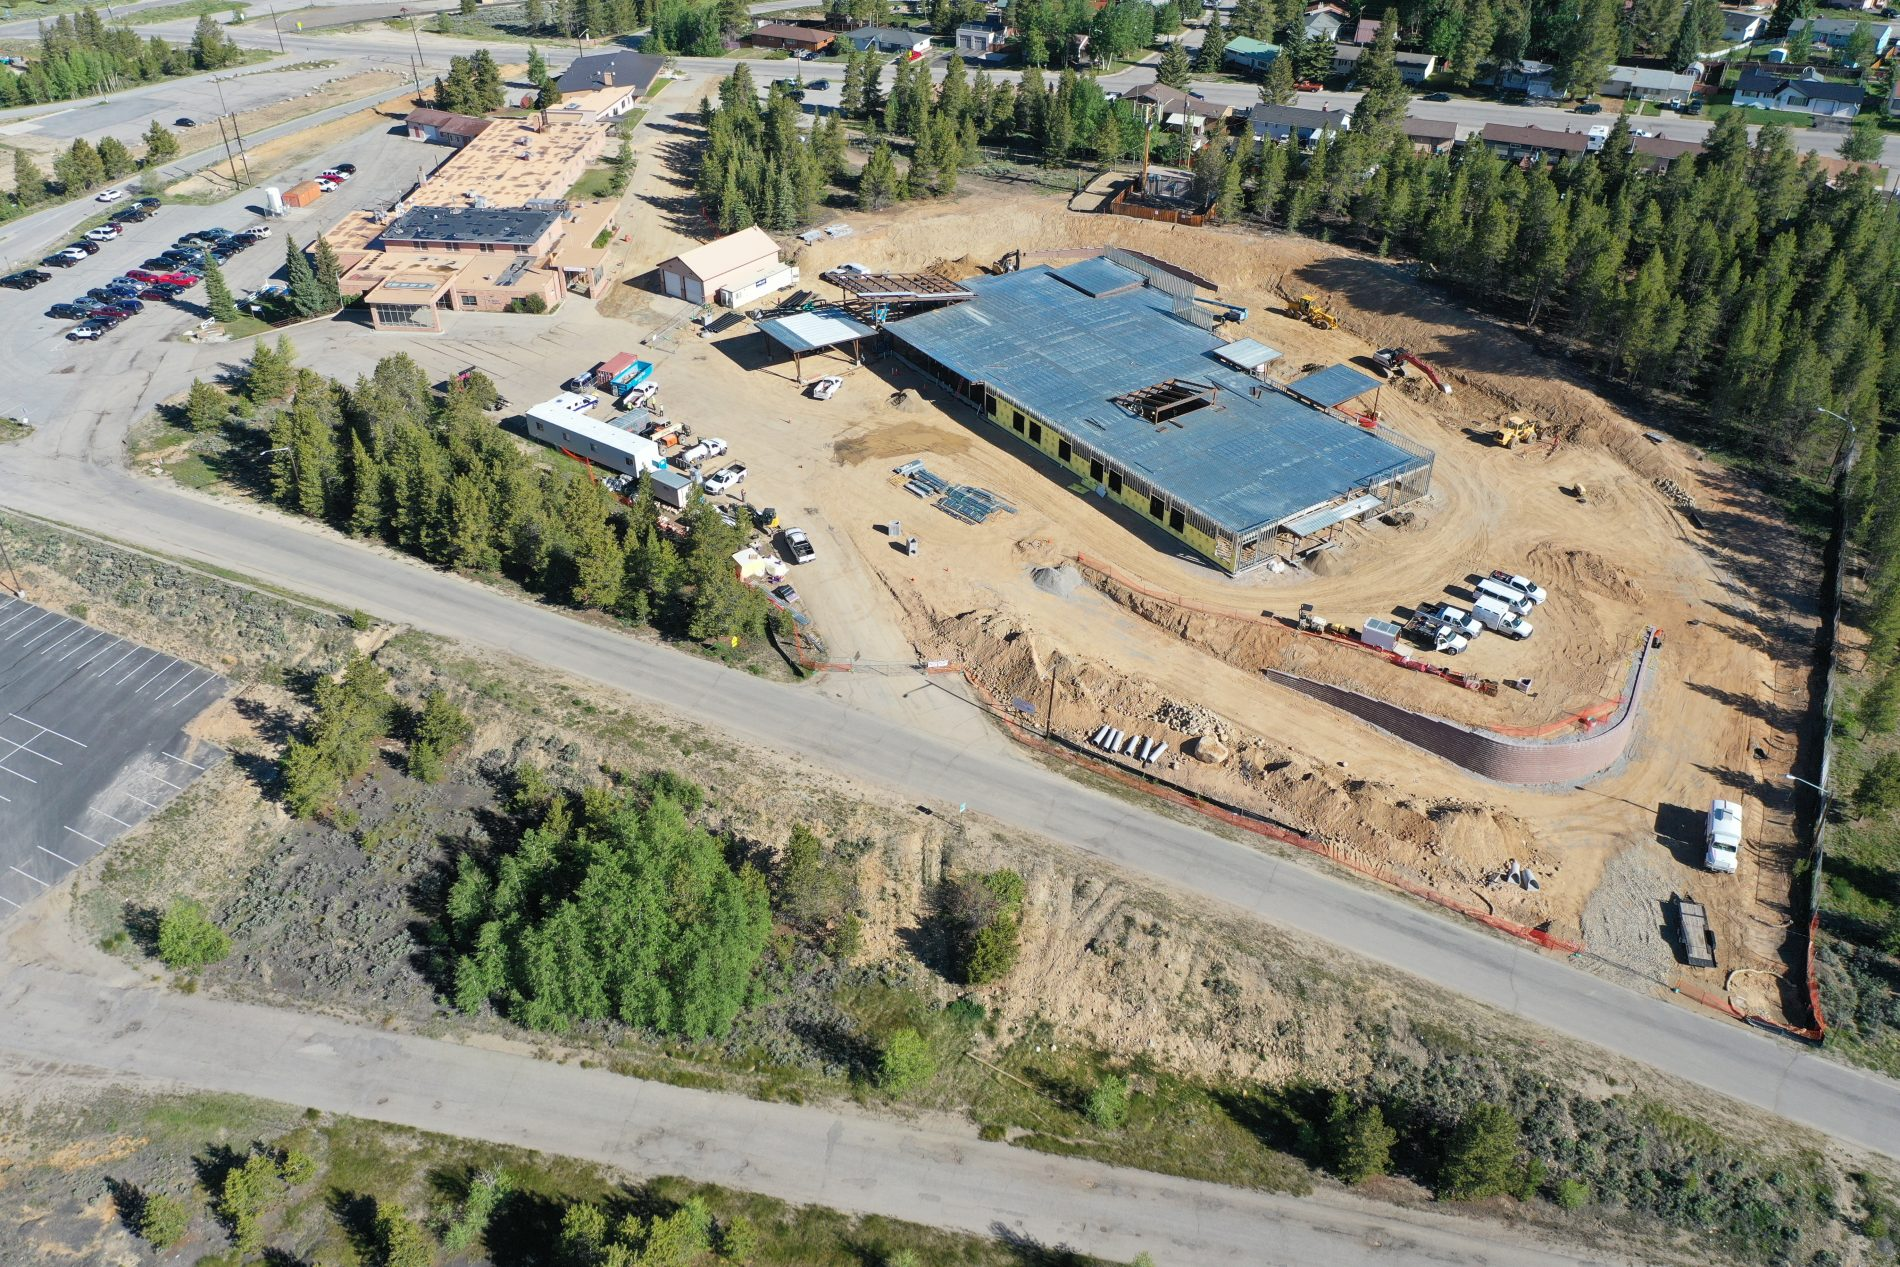 July progress drone footage posted